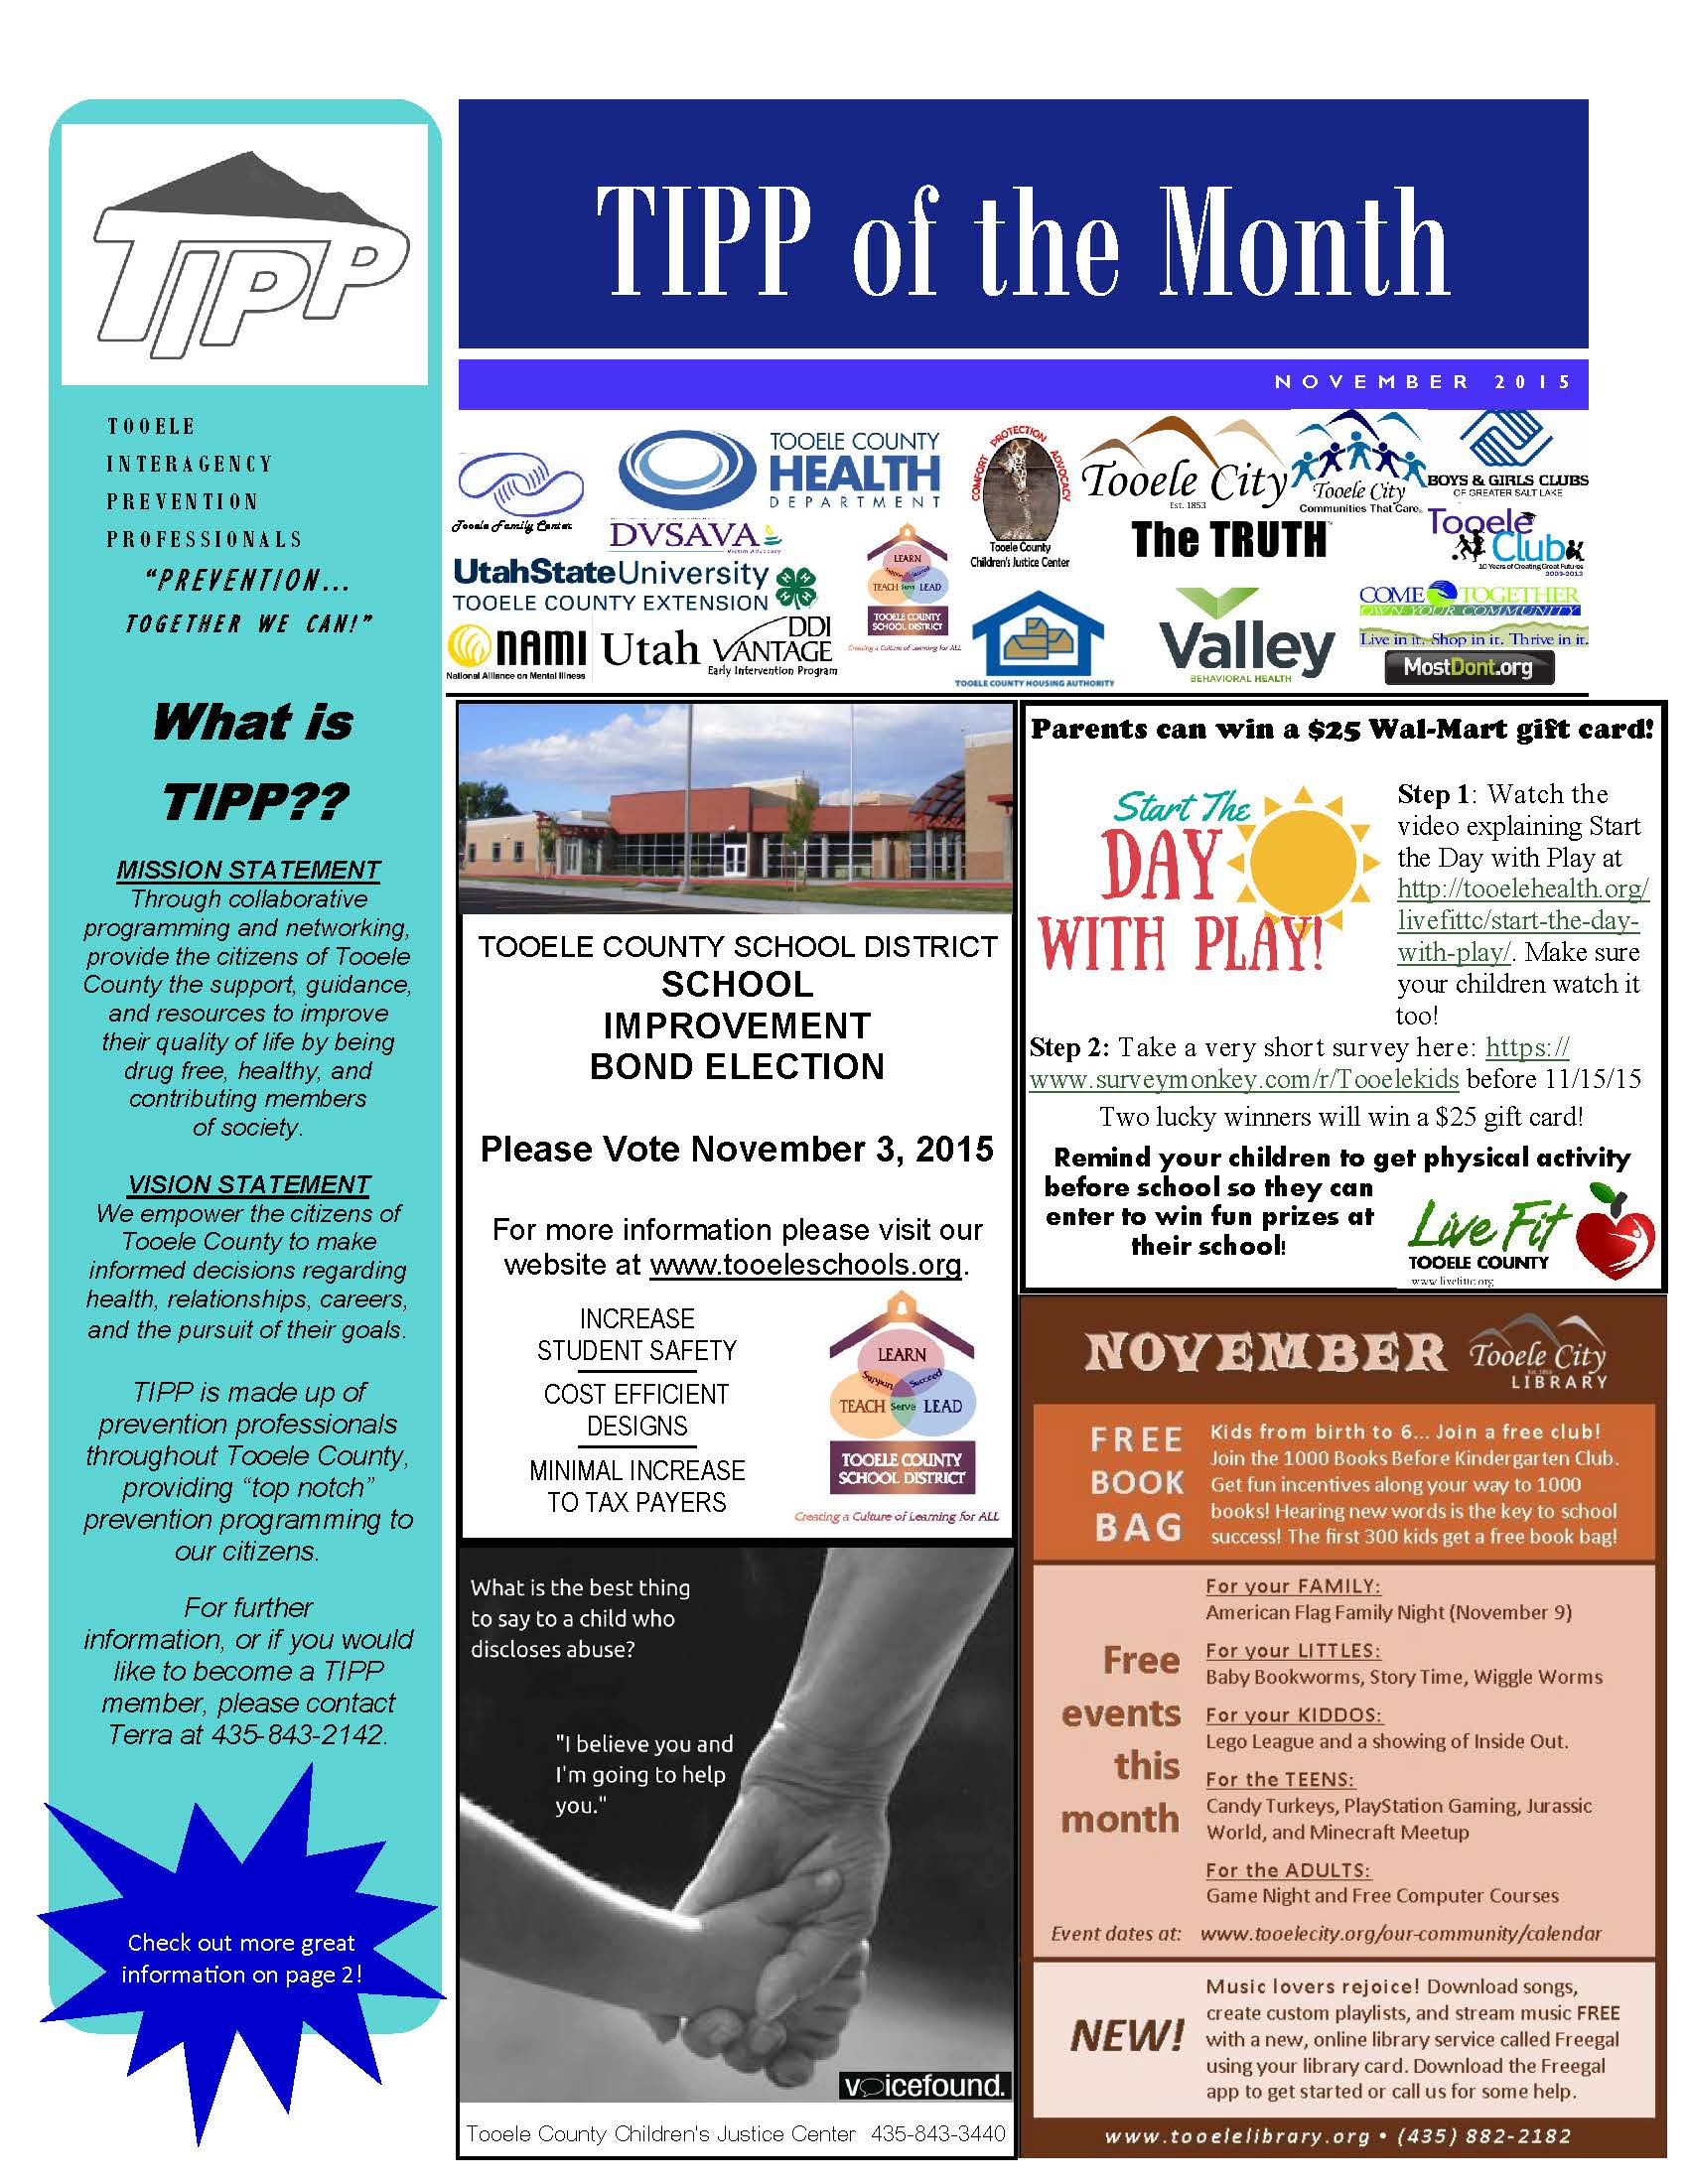 TIPP Newsletter November 2015